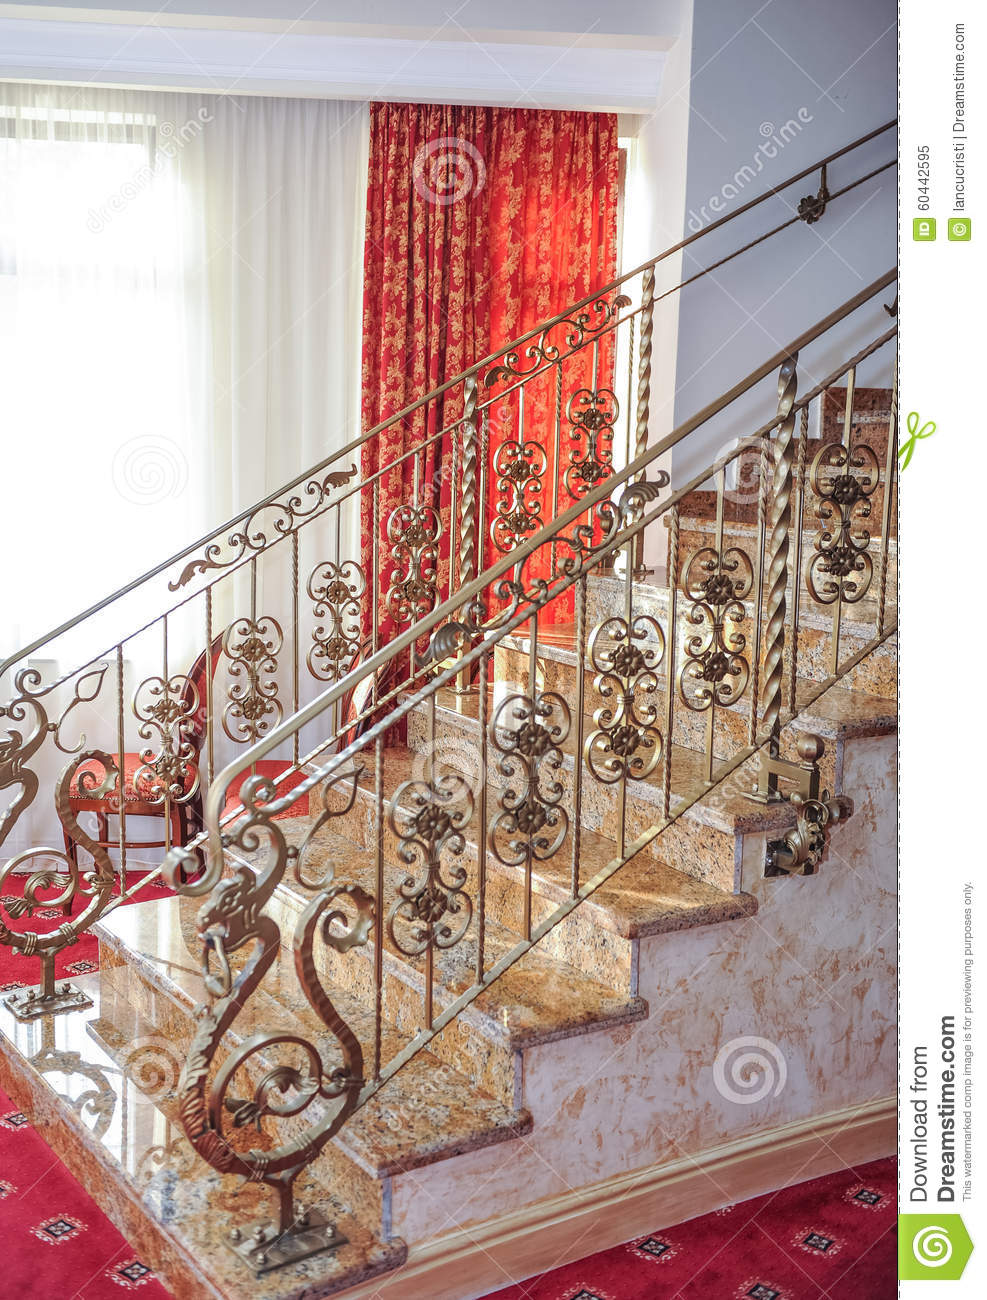 Marble Stairs With Golden Metal Handle Leading Up. Luxurious Stairs With  Red Curtains On Background